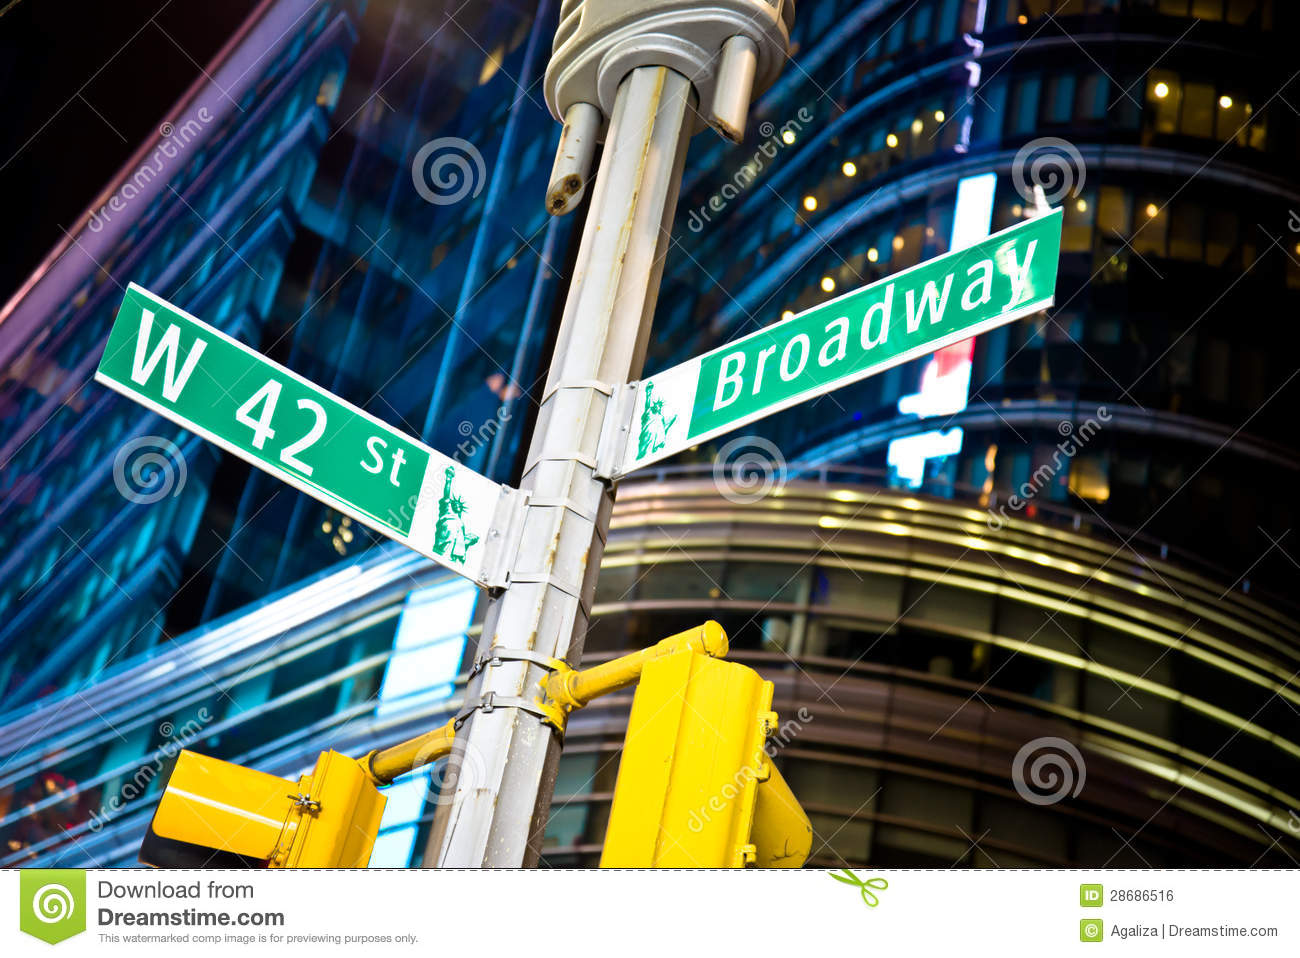 West 42nd Street And Broadway Stock Photo - Image: 28686516